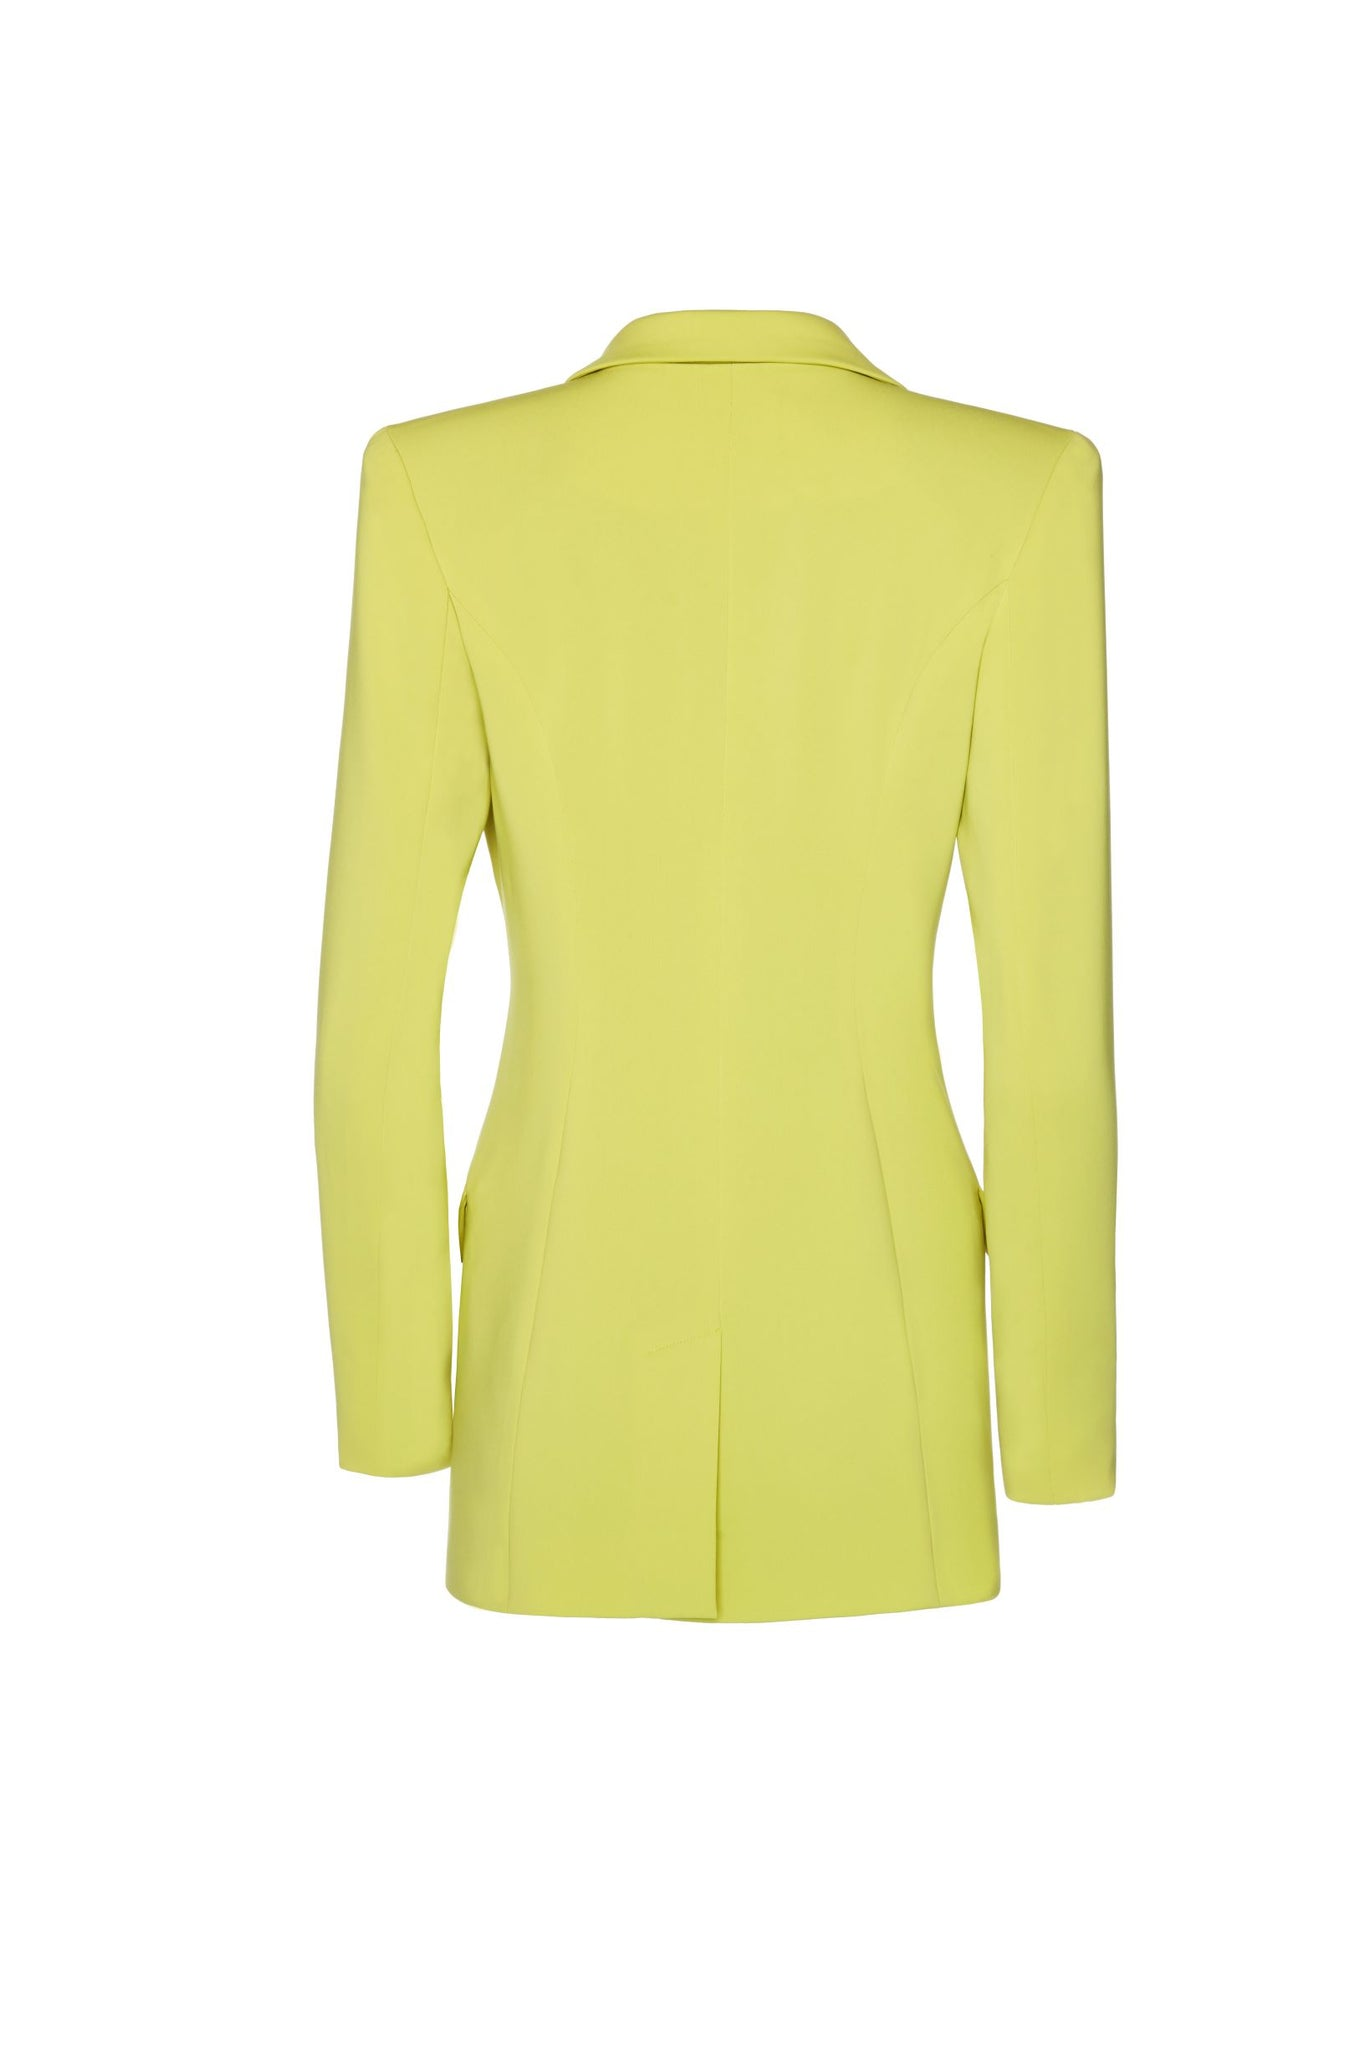 Janet Tailored Blazer - Citron